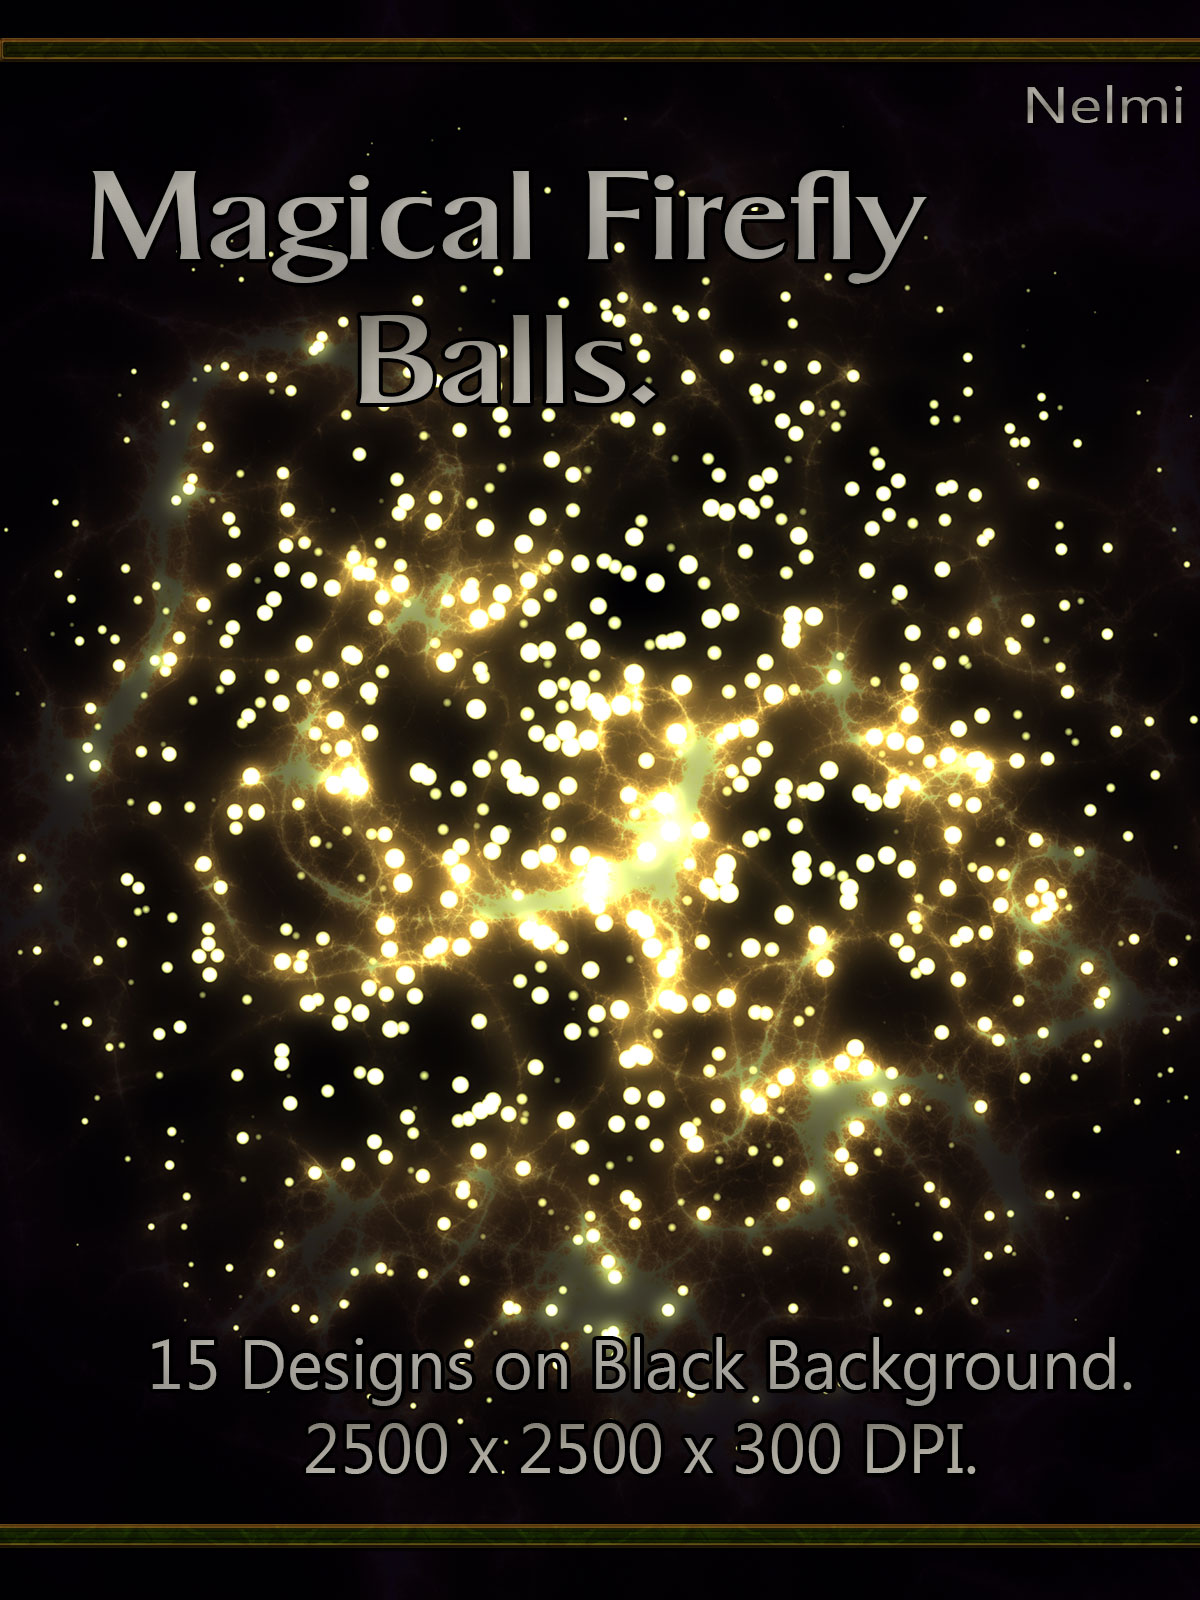 Magical Firefly Balls - 15 Designs on Black Background. by nelmi